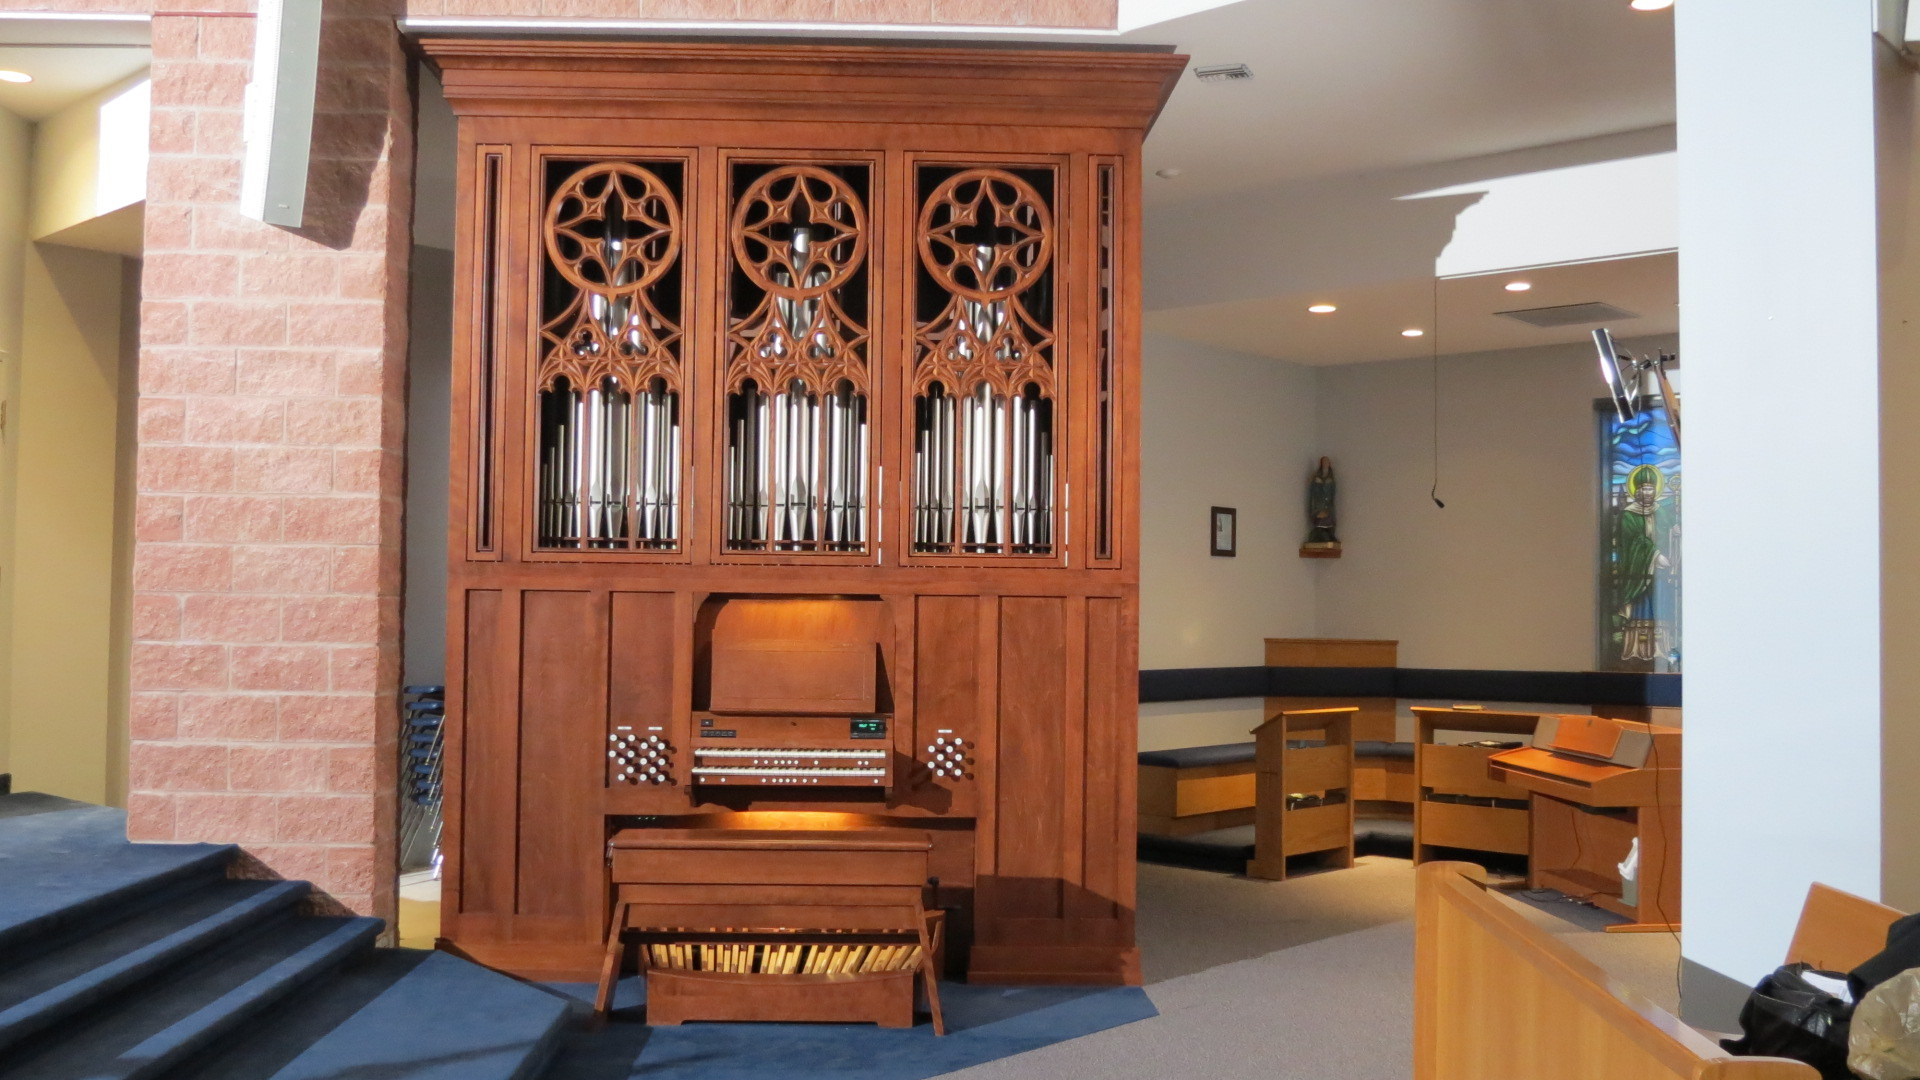 Inspiration Organ, Immaculate Conception Church, Port Perry, Ontario